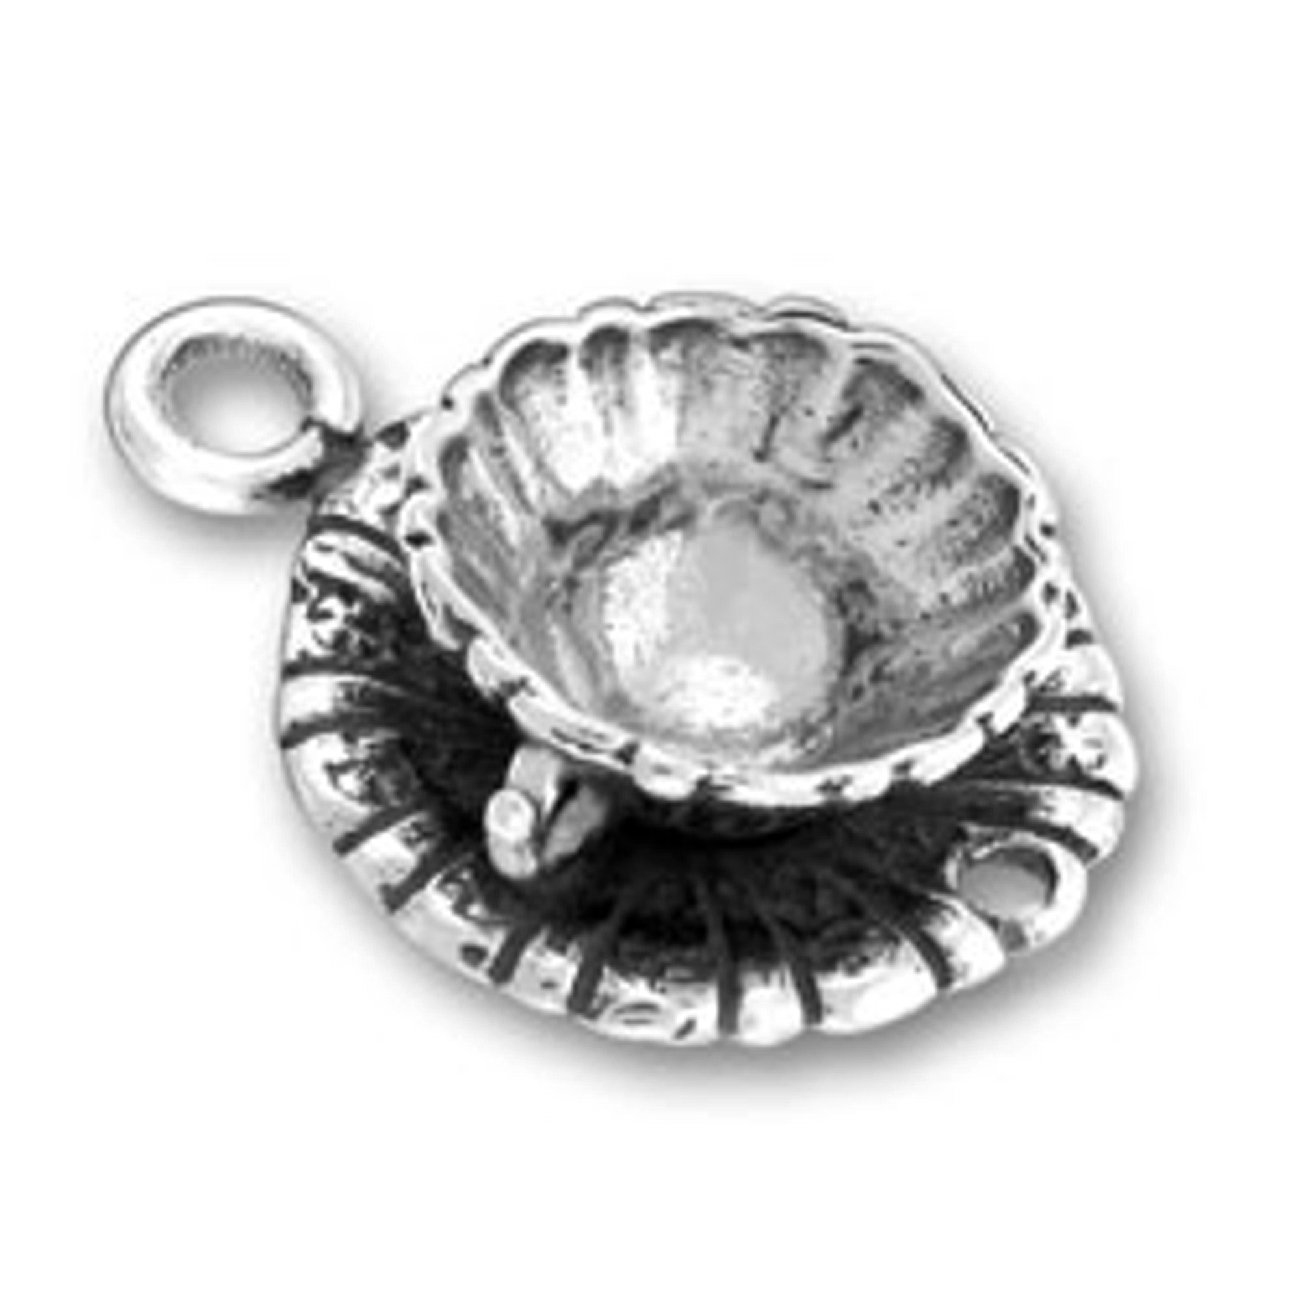 Sterling Silver Charm Bracelet Attached 3D Kitchen Decorative Tea Or Coffee Cup Charm Saucer And Spo